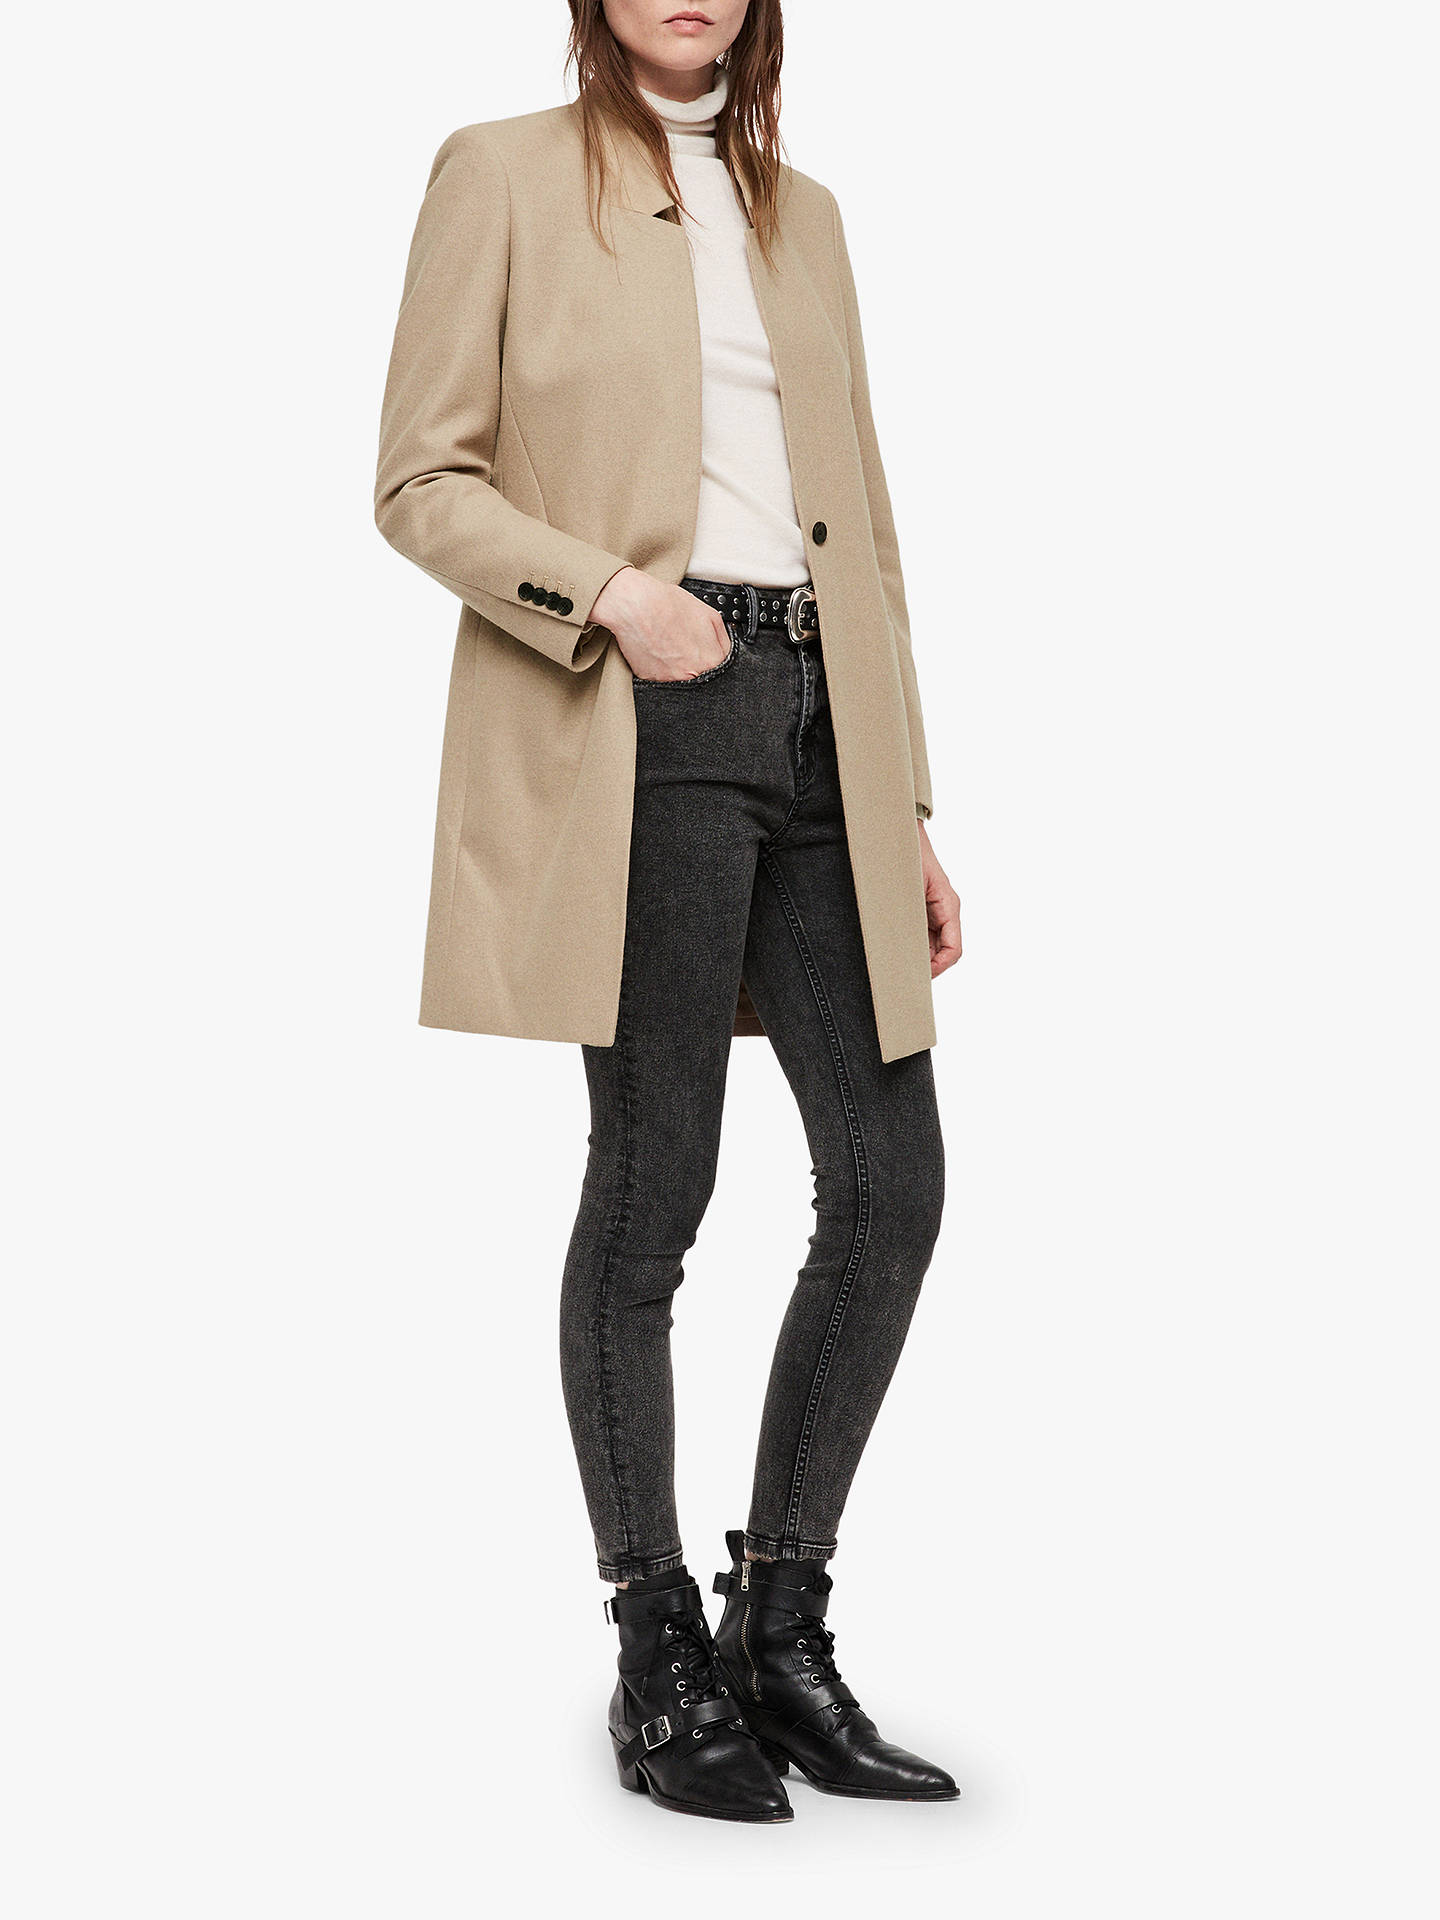 BuyAllSaints Lyla Coat, Light Tan, 14 Online at johnlewis.com